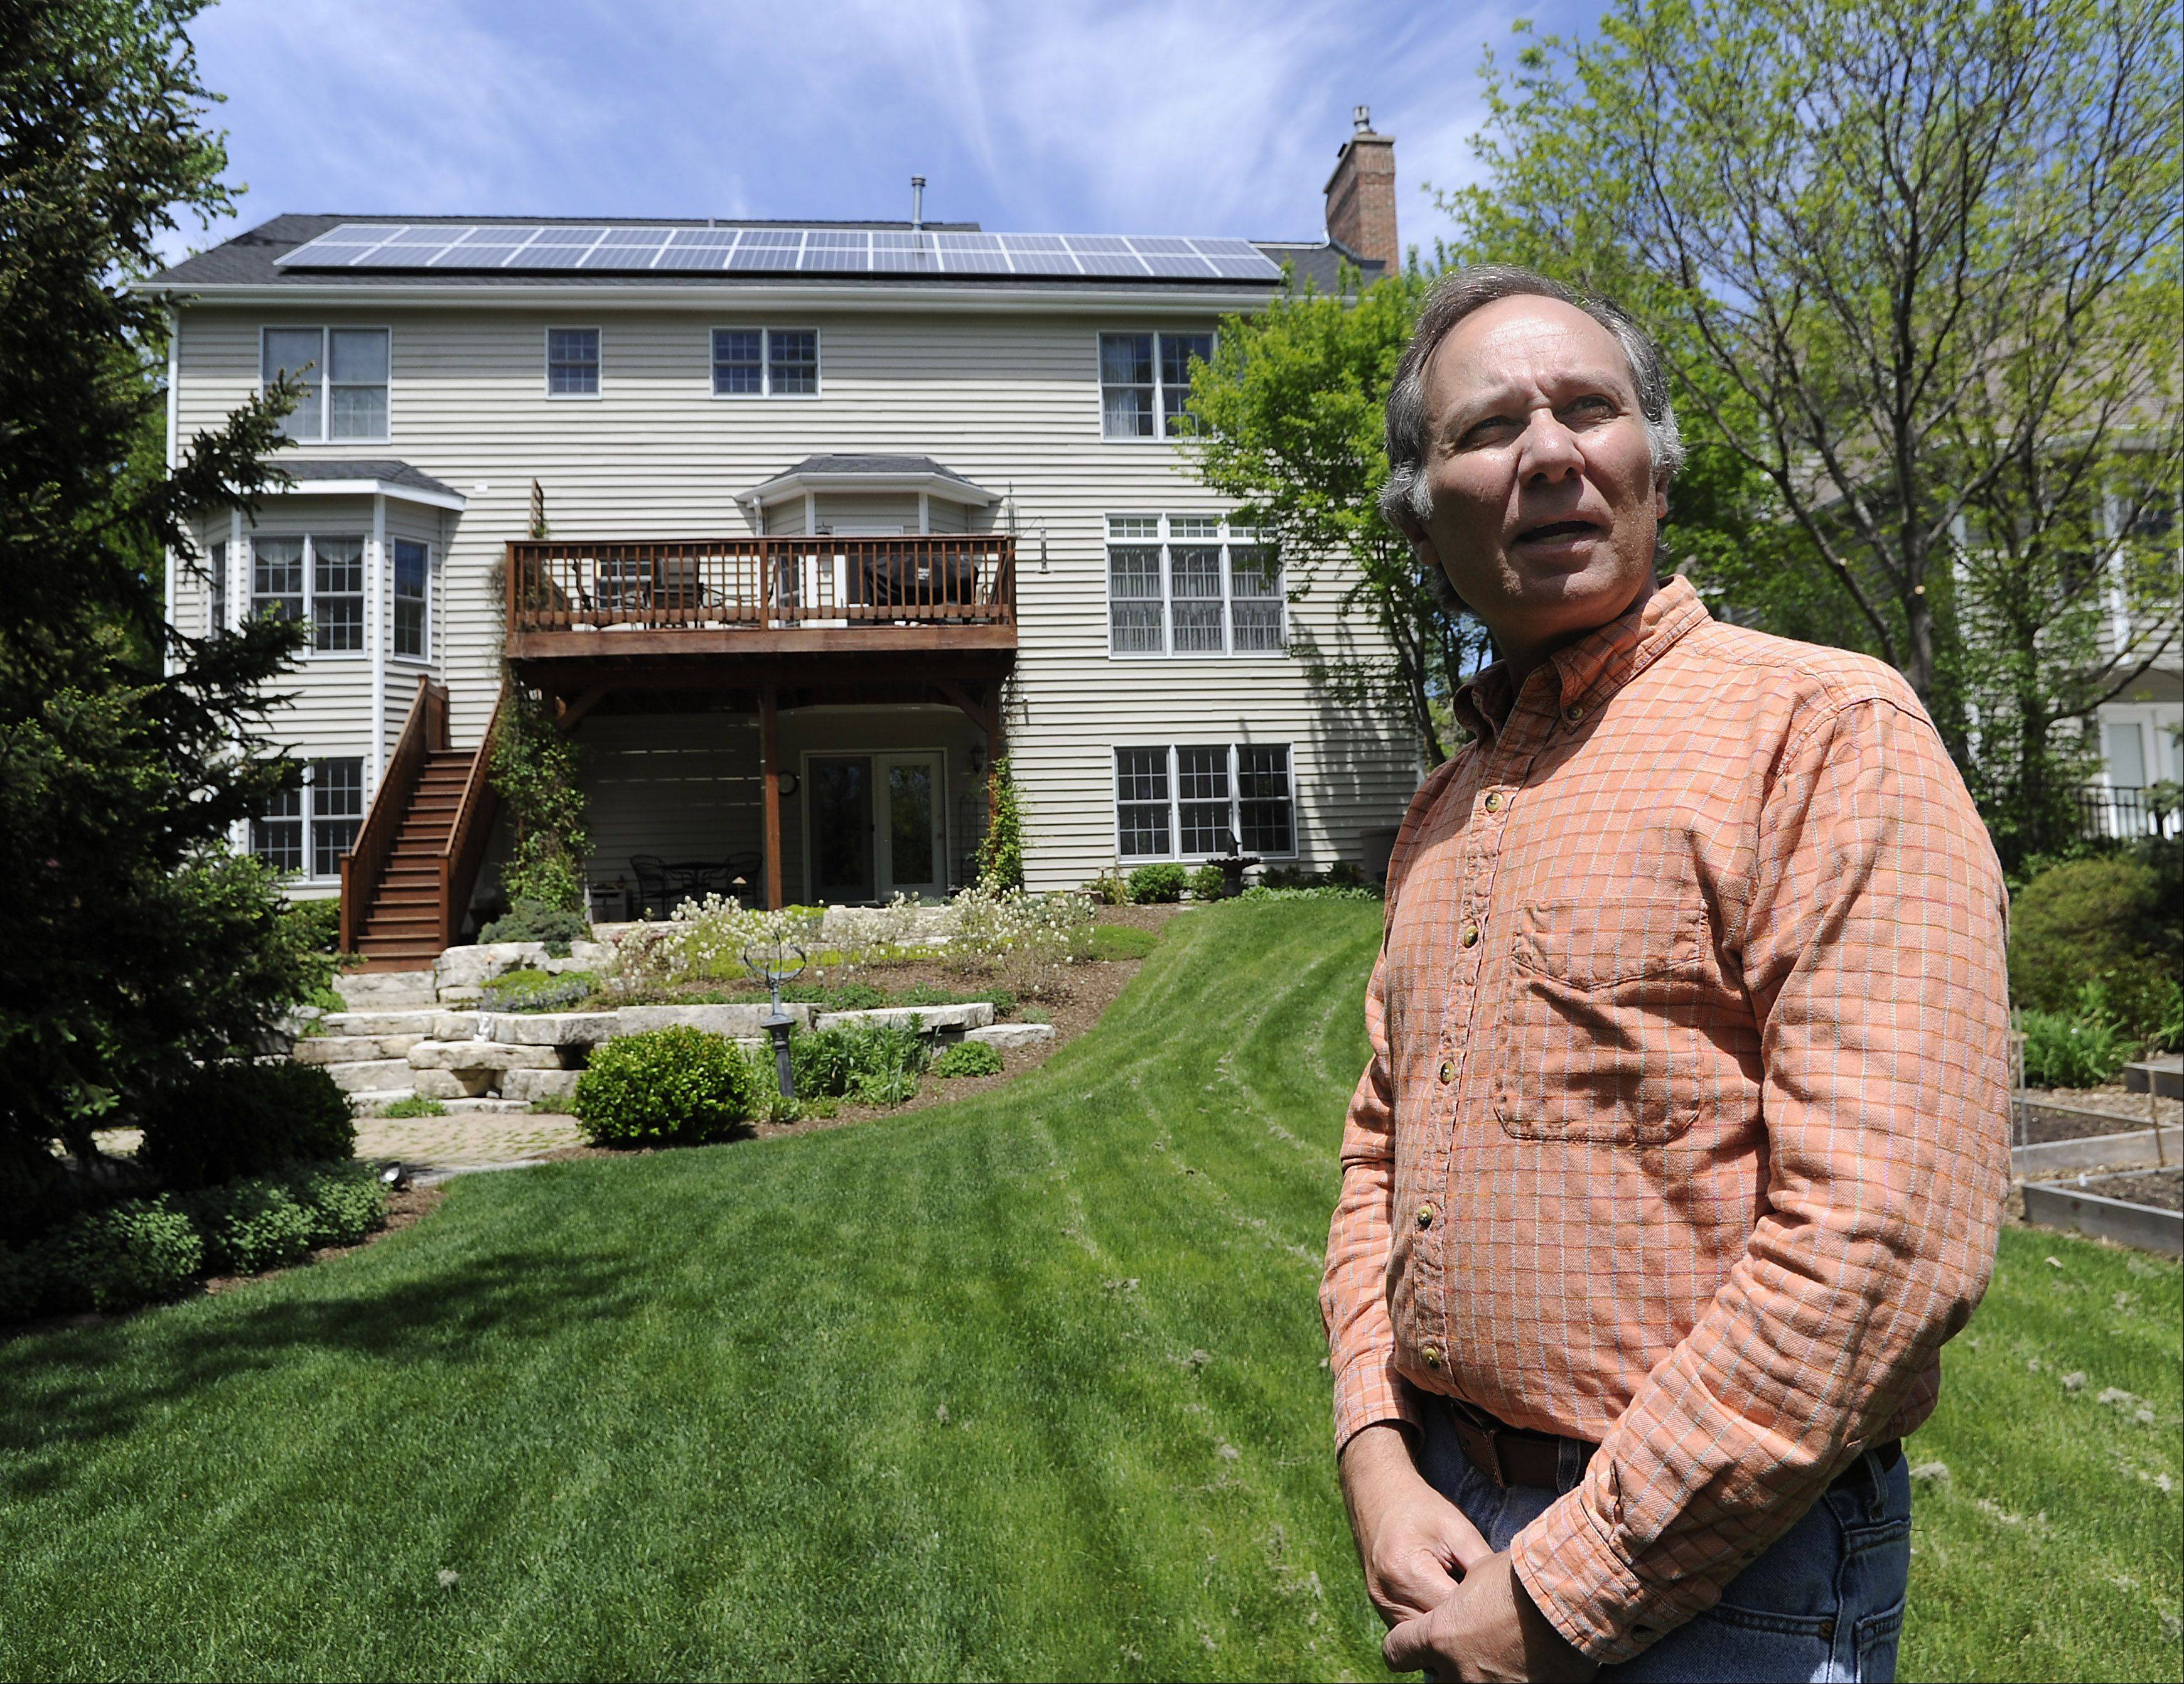 Palatine resident Peter Gorr is going green with his new solar powered system on his roof consisting of 28 panels that will cuts his energy costs.